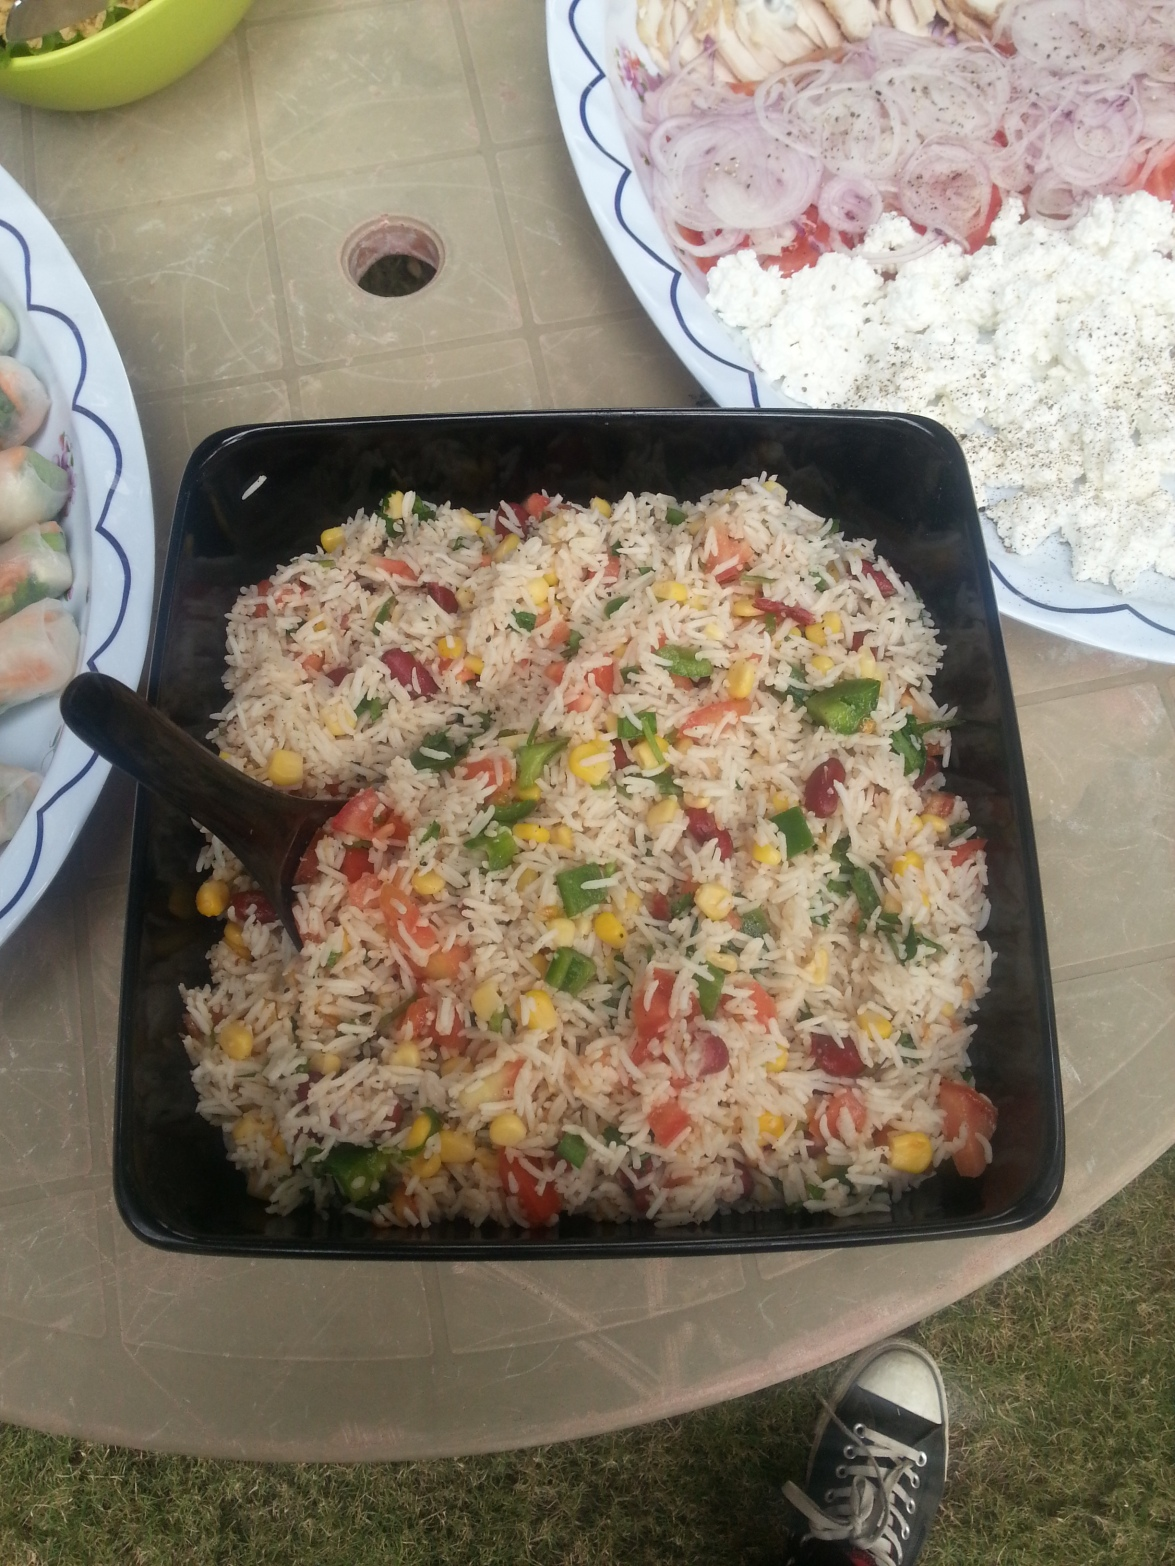 Rice salad with kidney beans and sweet corn